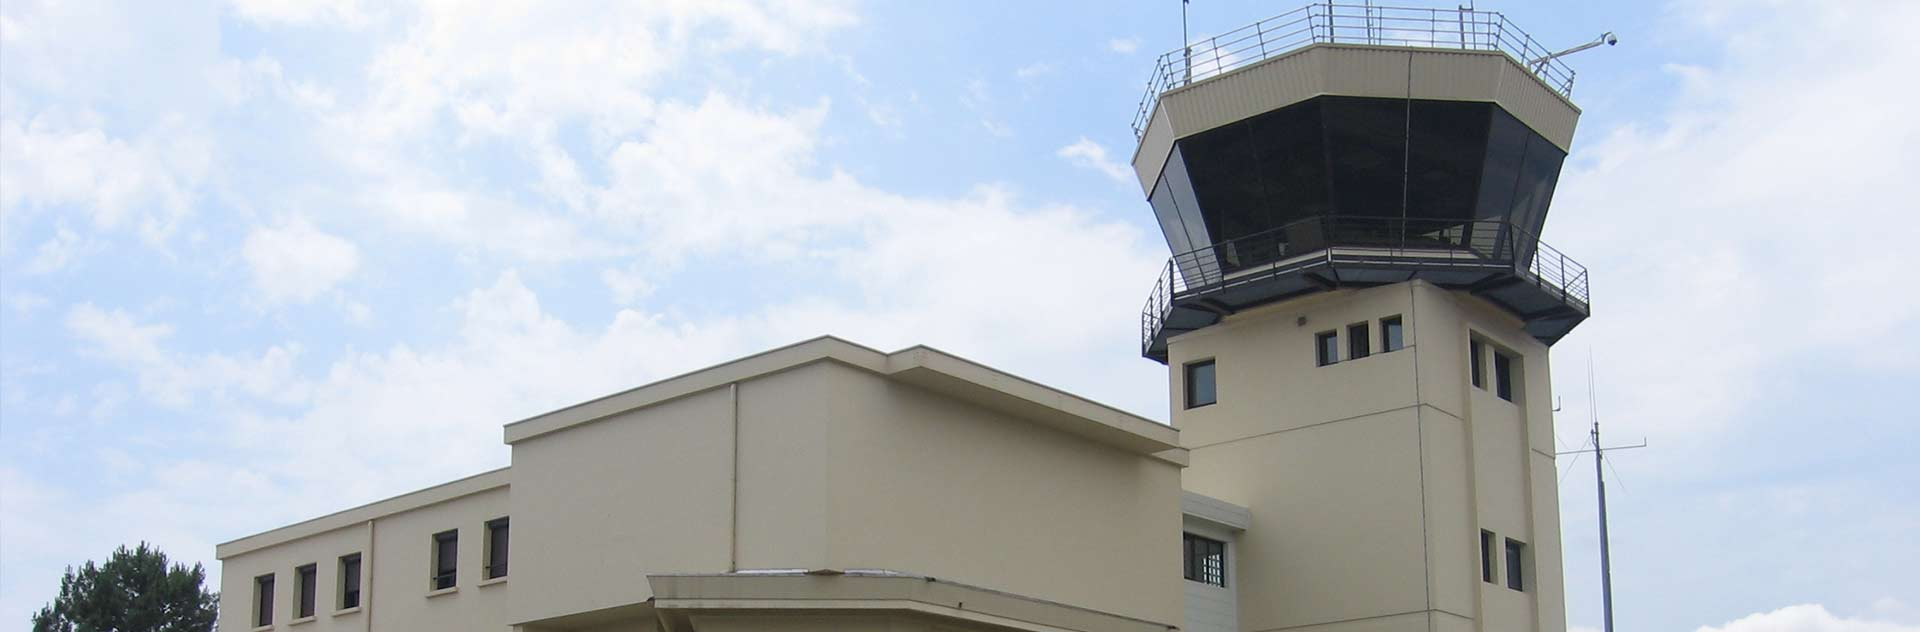 Fortion 1SkyTower is a Command and Control unit able to control both civil and military aircraft